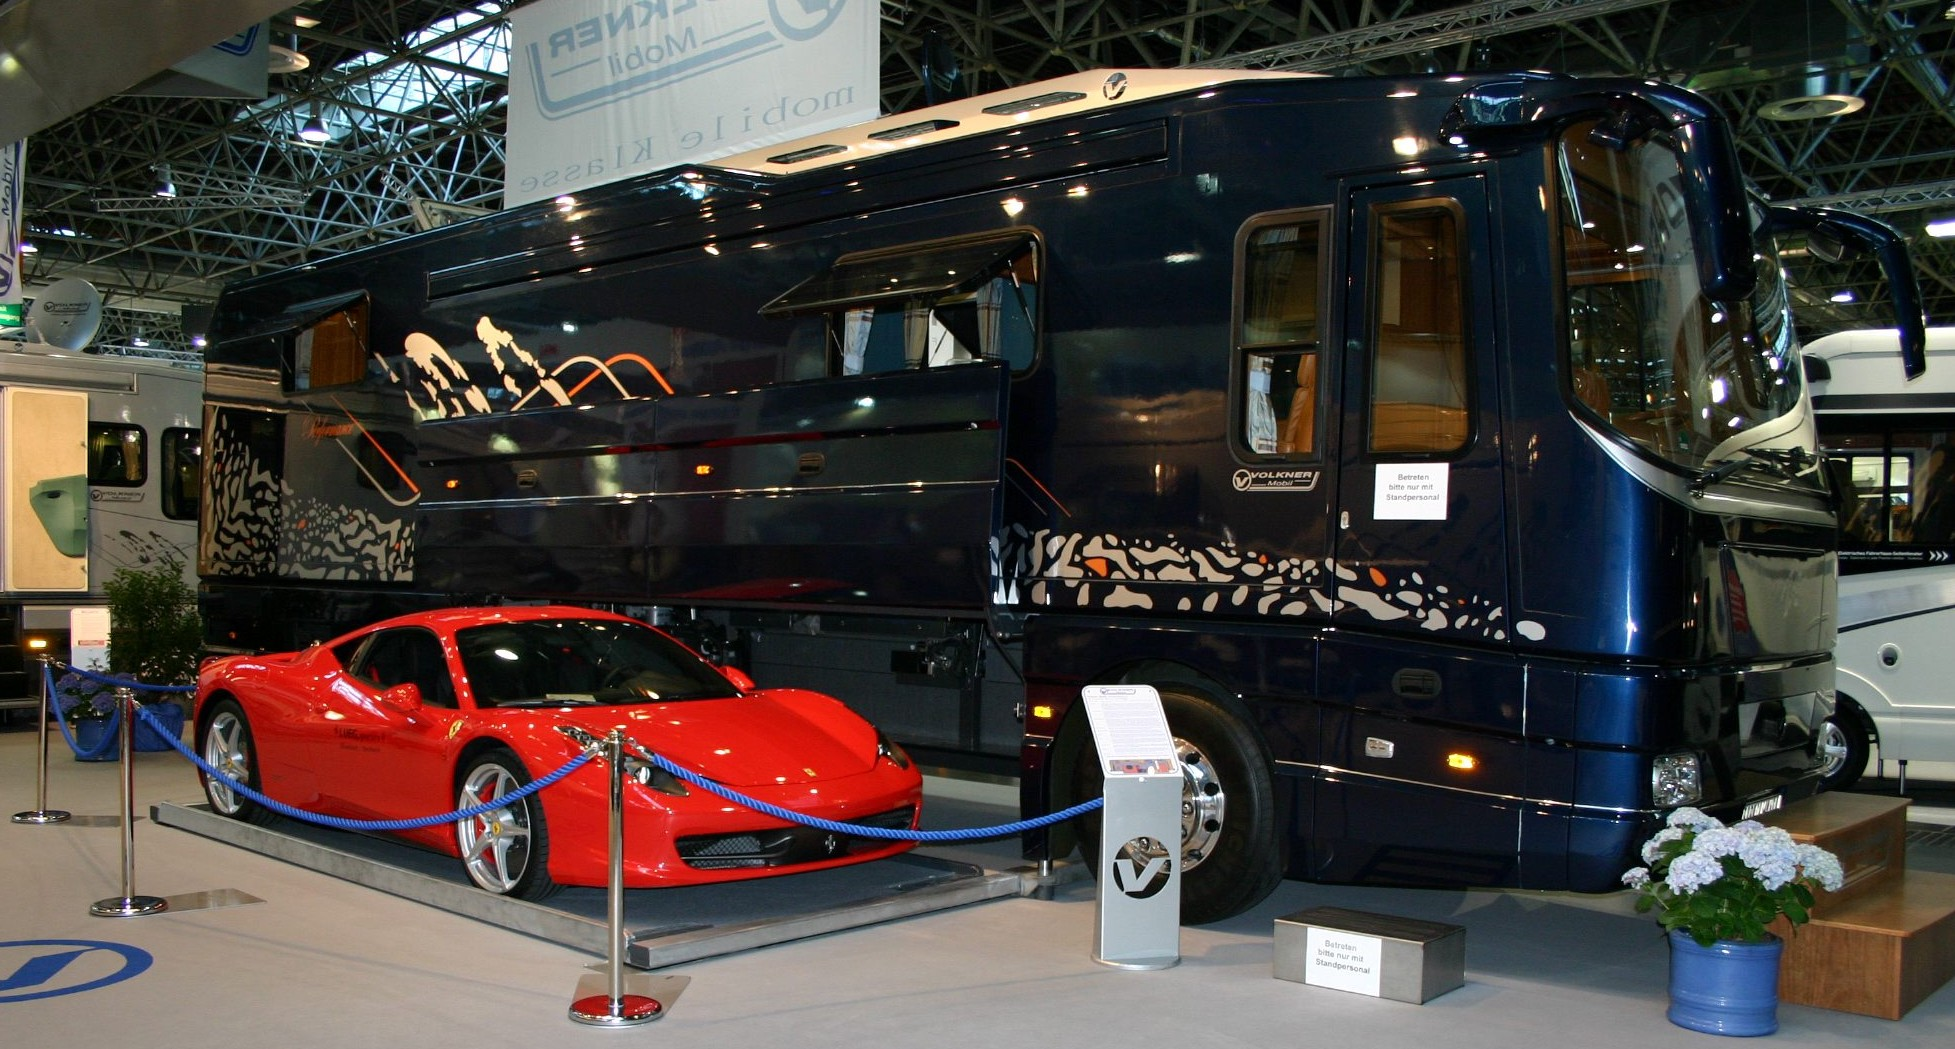 The sports car can be driven onto a cargo floor which then lifts and moves sideways into the motorhome